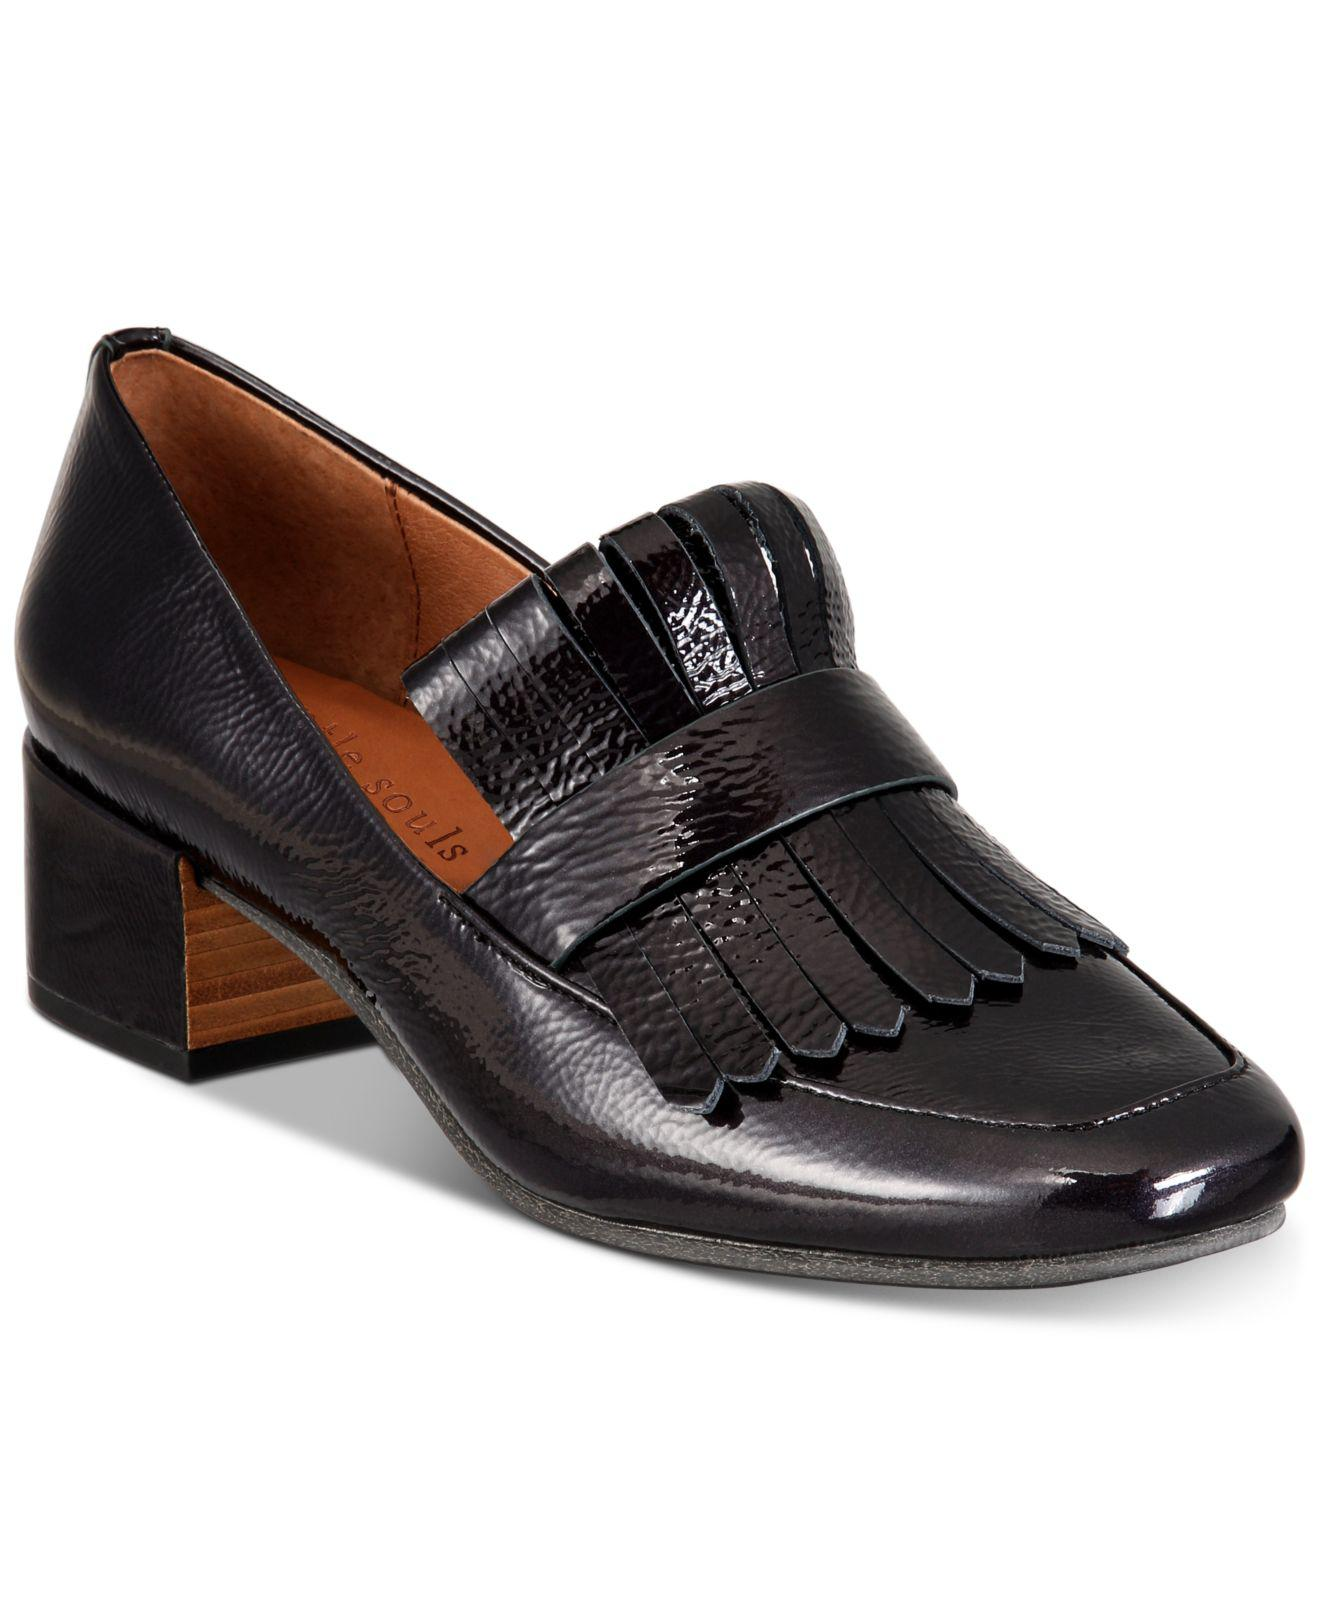 aff4f337010 Lyst - Gentle Souls Ethan Kiltie Loafer in Black - Save 50%